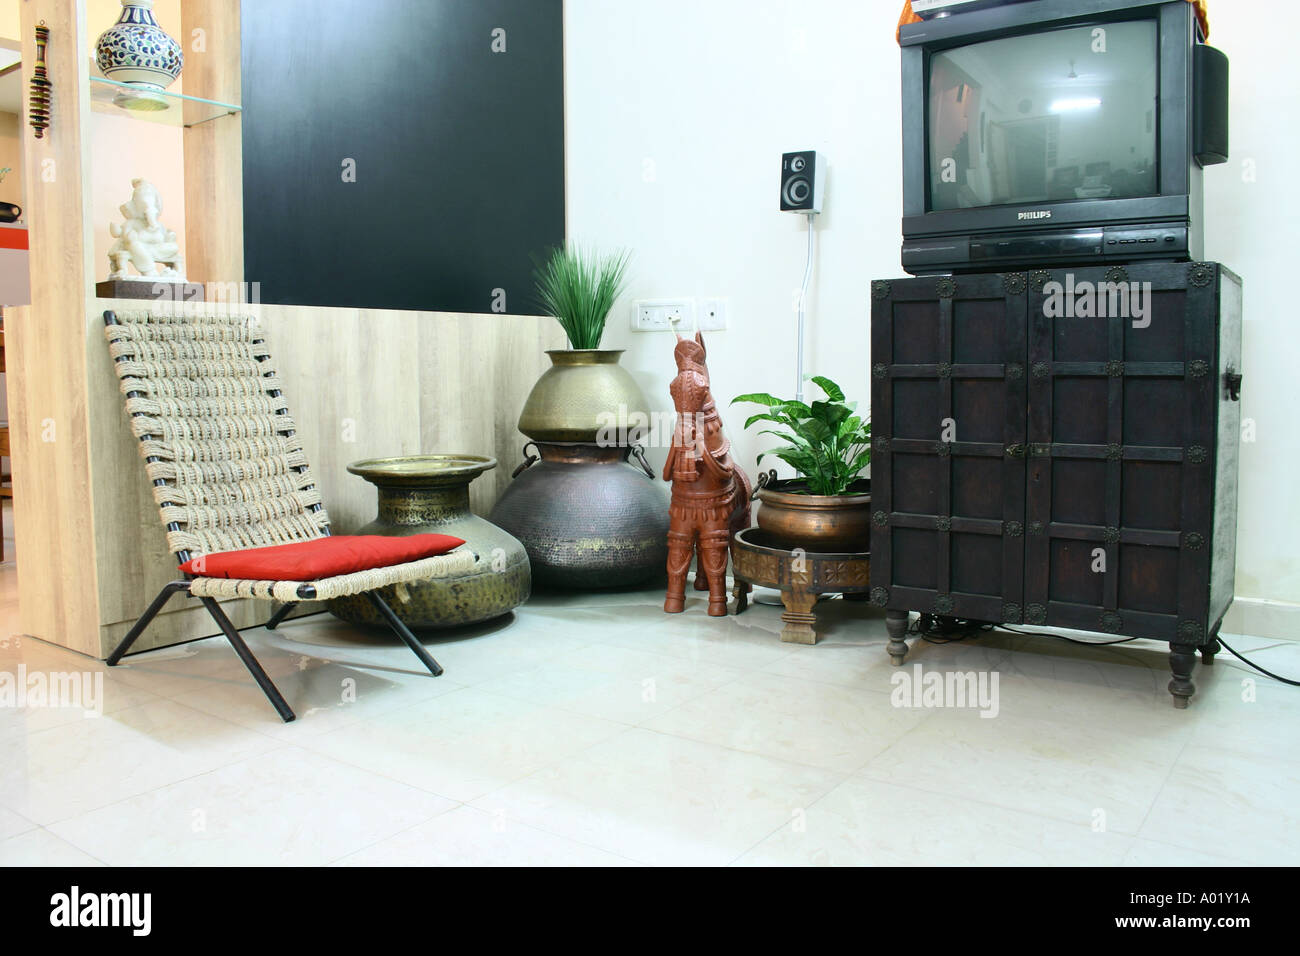 Indian Living Room Interior Of Urban Indian Living Room Plastic Cane Chair Red